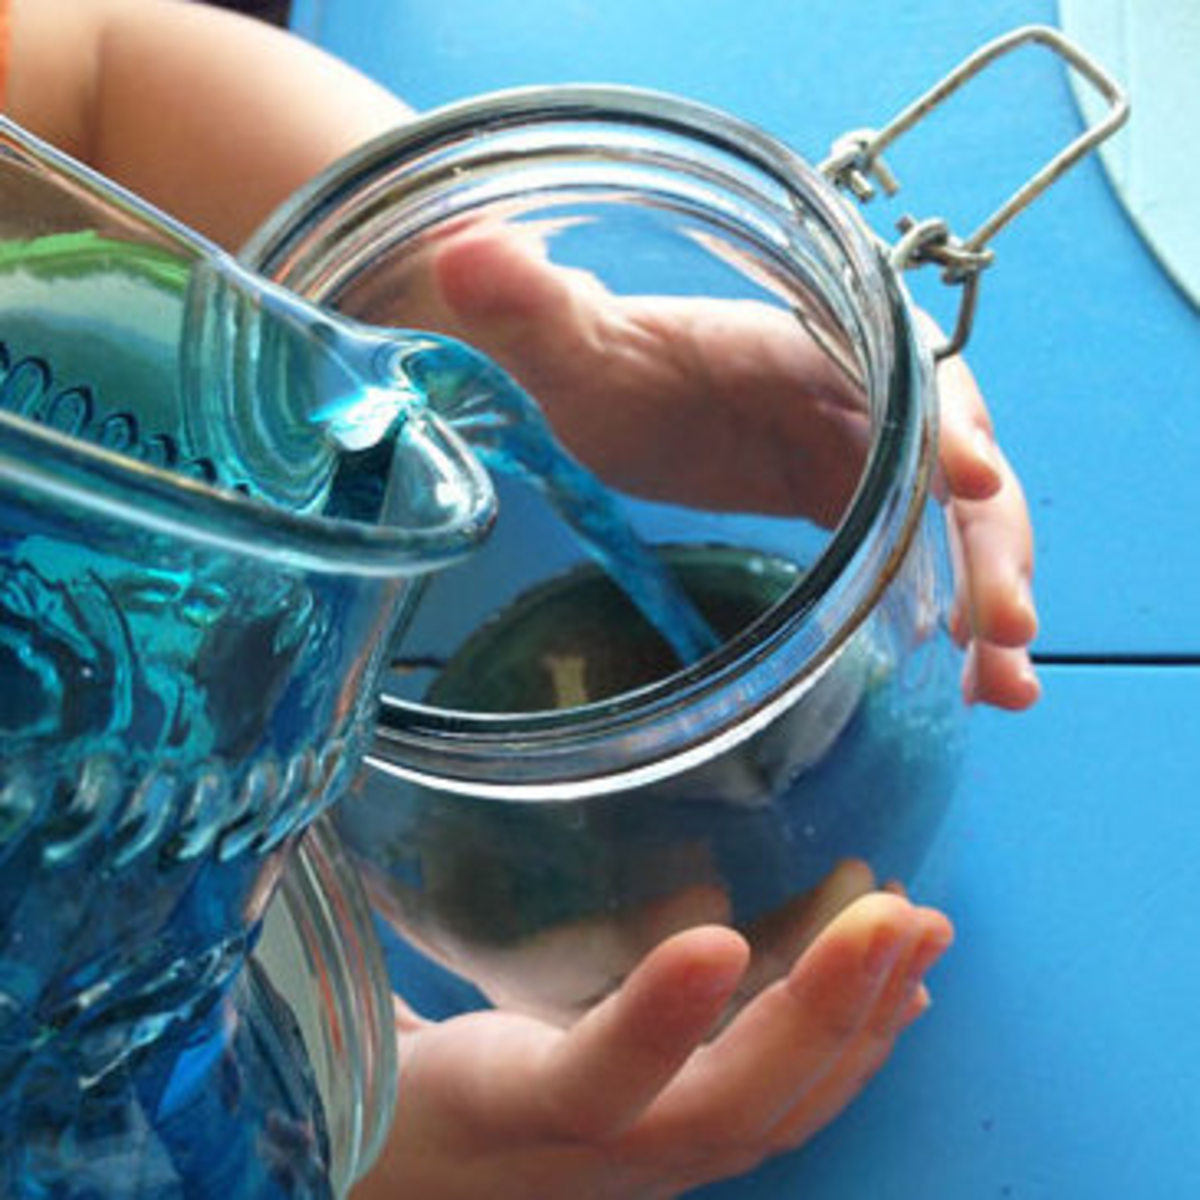 Filling a jar with sand and blue water to represent the Earth - Image credit: http://www.cbc.ca/parents/play/view/activity_for_kids_make_an_ocean_in_a_jar